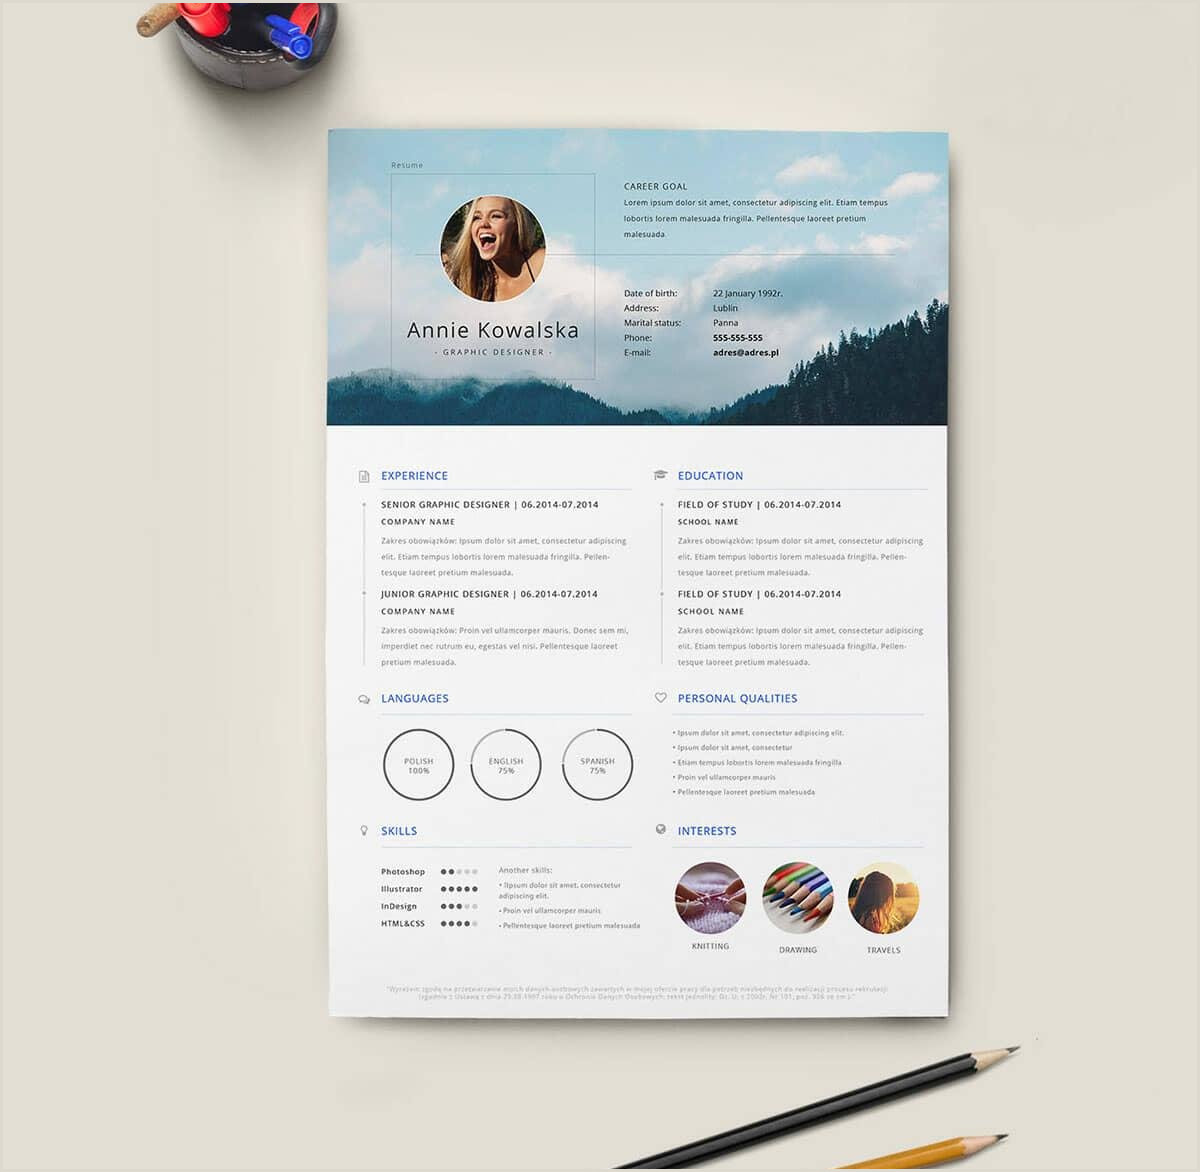 Latest Curriculum Vitae format Download Pdf 17 Free Resume Templates Downloadable